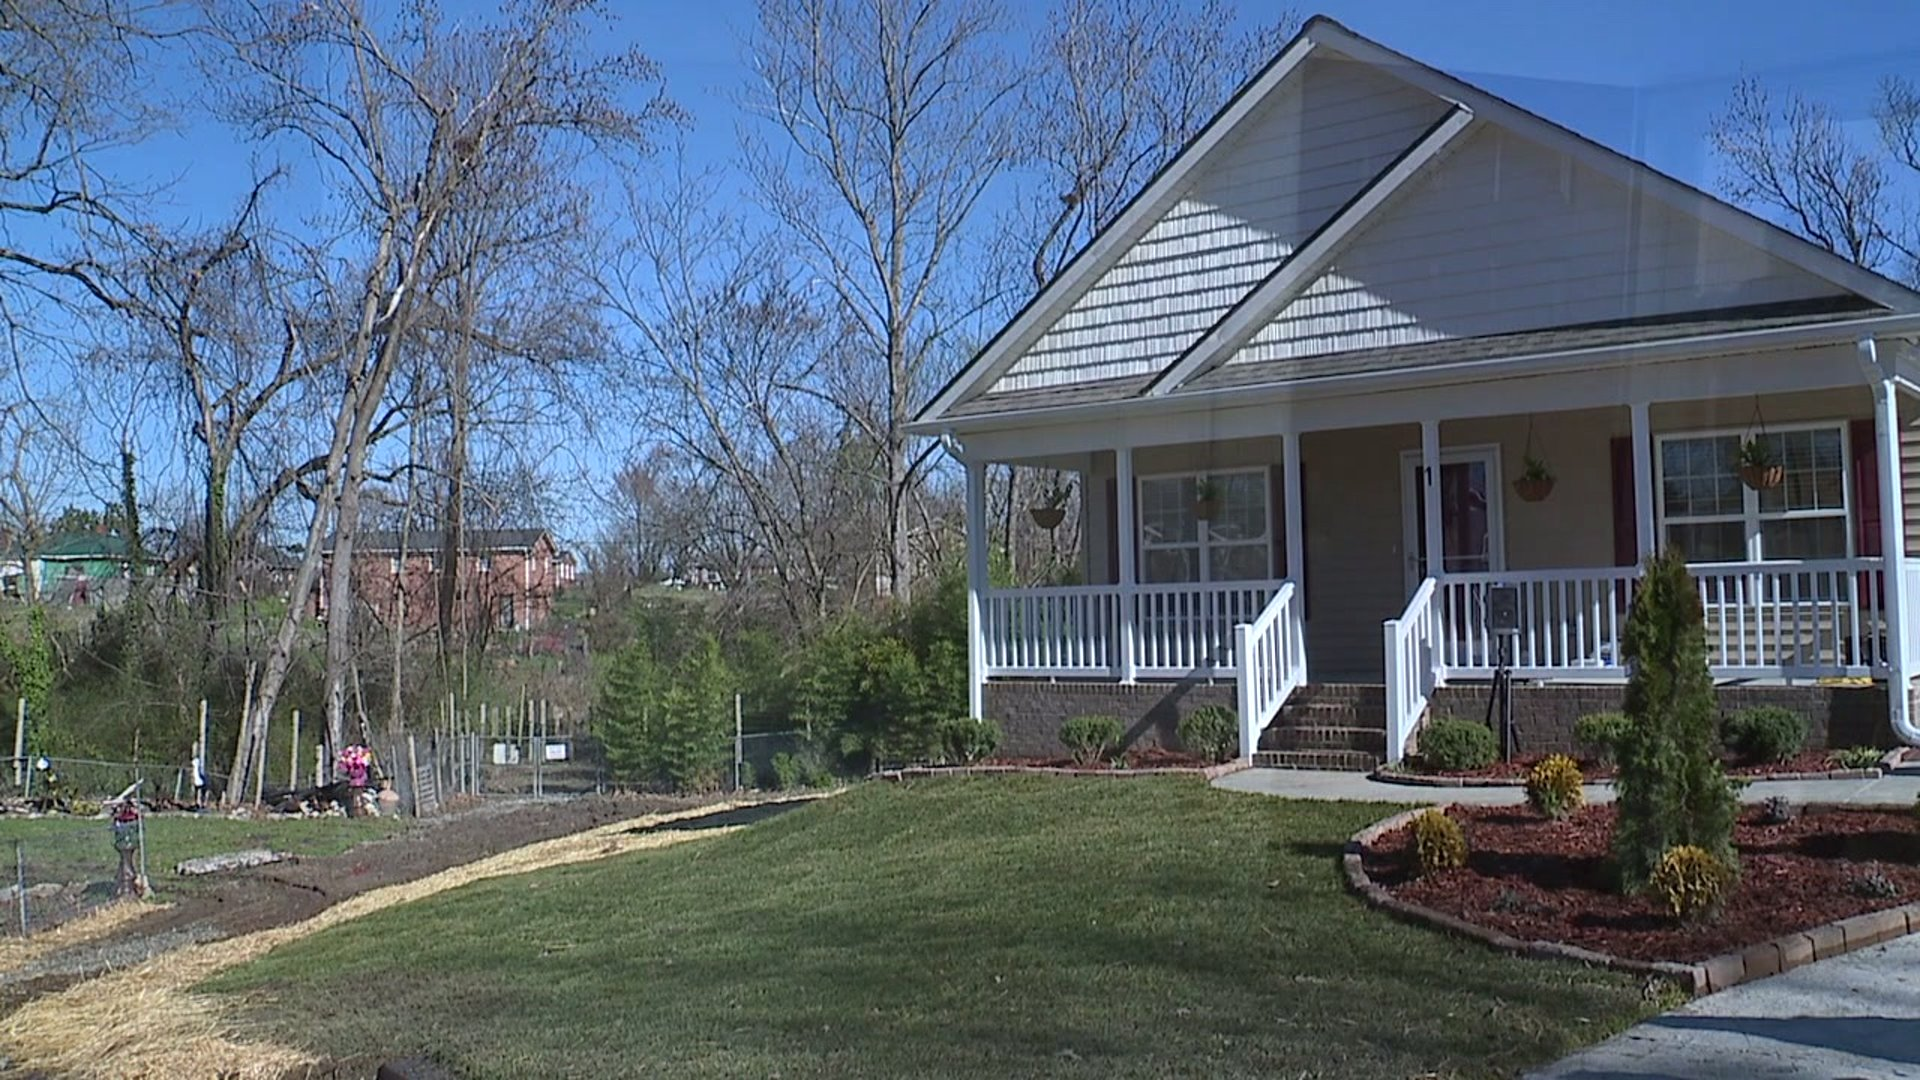 Greensboro family finally gets new home after 2018 tornado